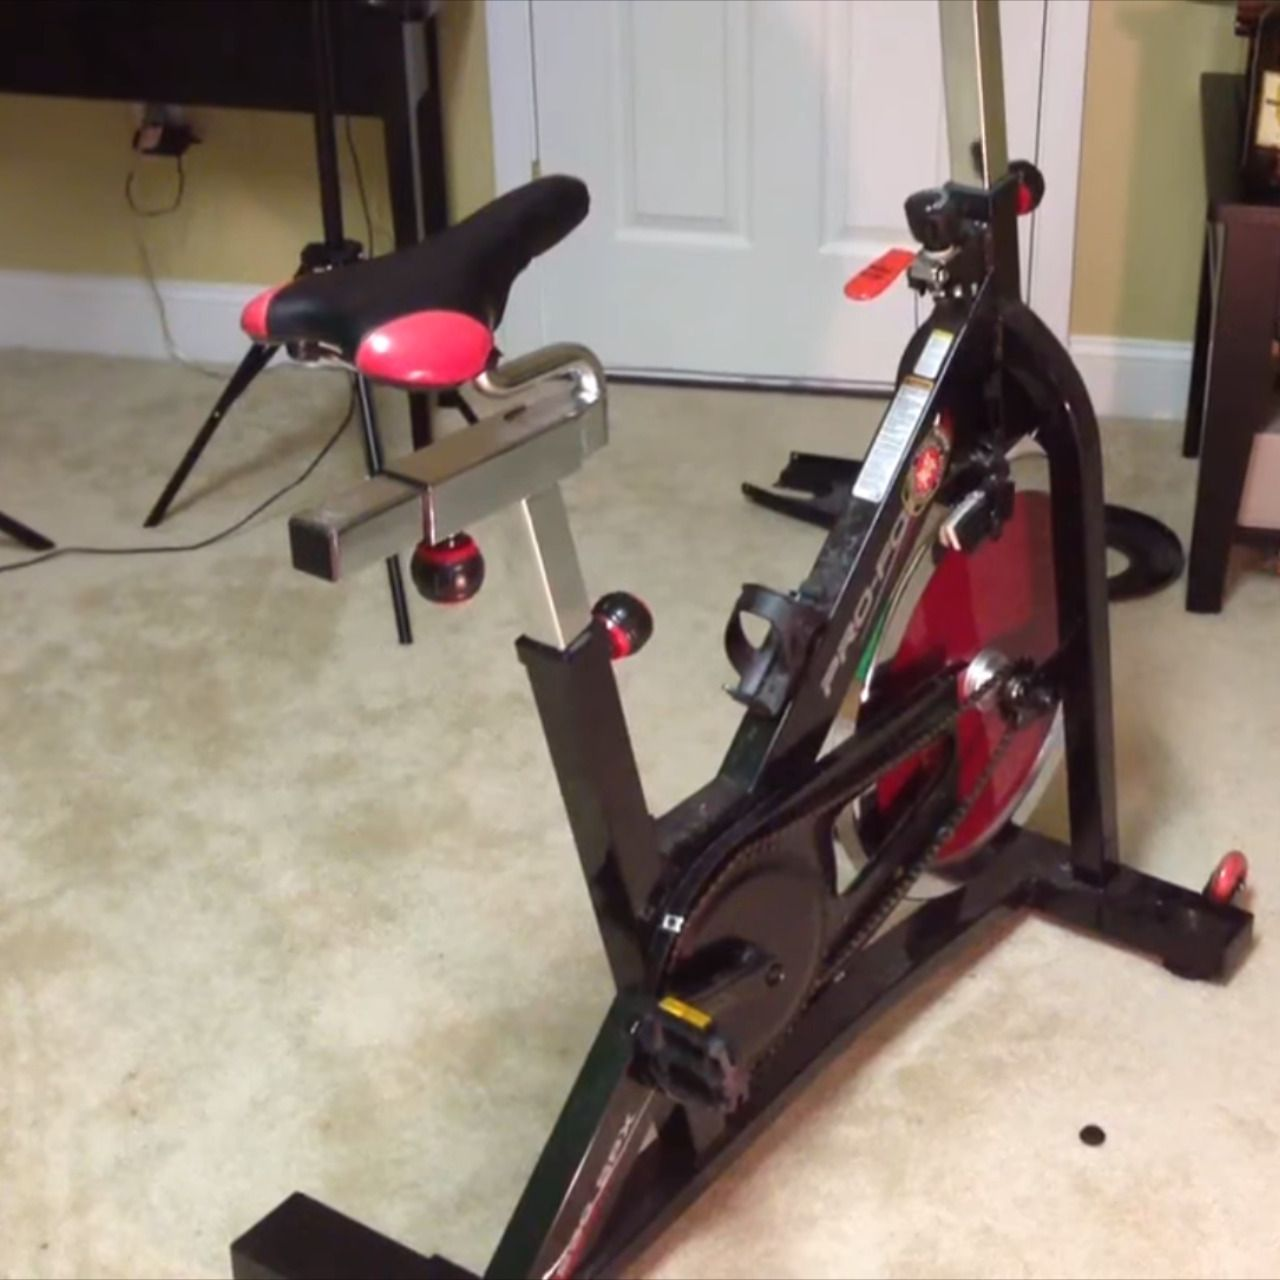 Foldable Exercise Bike Reviews Ironman Stationary Bike Weslo Pro